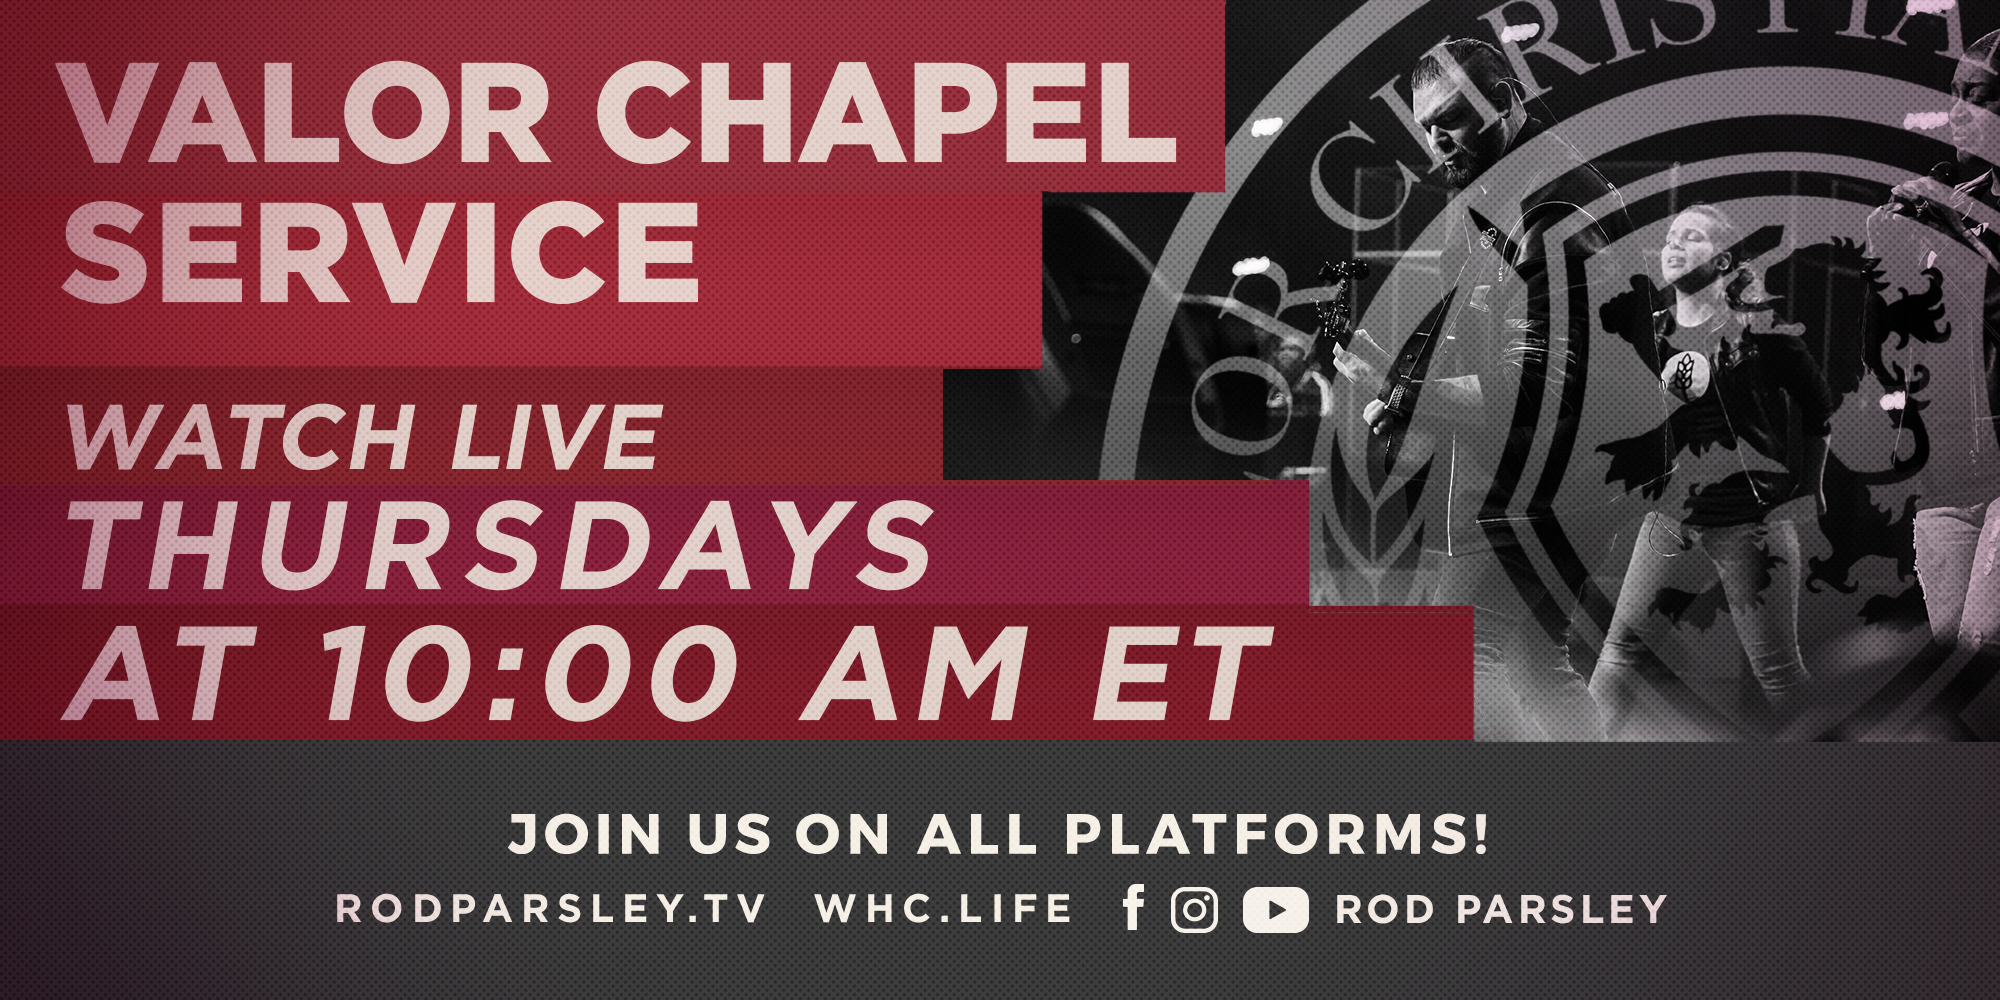 Valor Chapel Service Watch Live Thursdays at 10:00AM ET Join us on all Platforms! Rodparsley.tv WHC.LIFE Facebook Instagram Youtube Rod Parsley